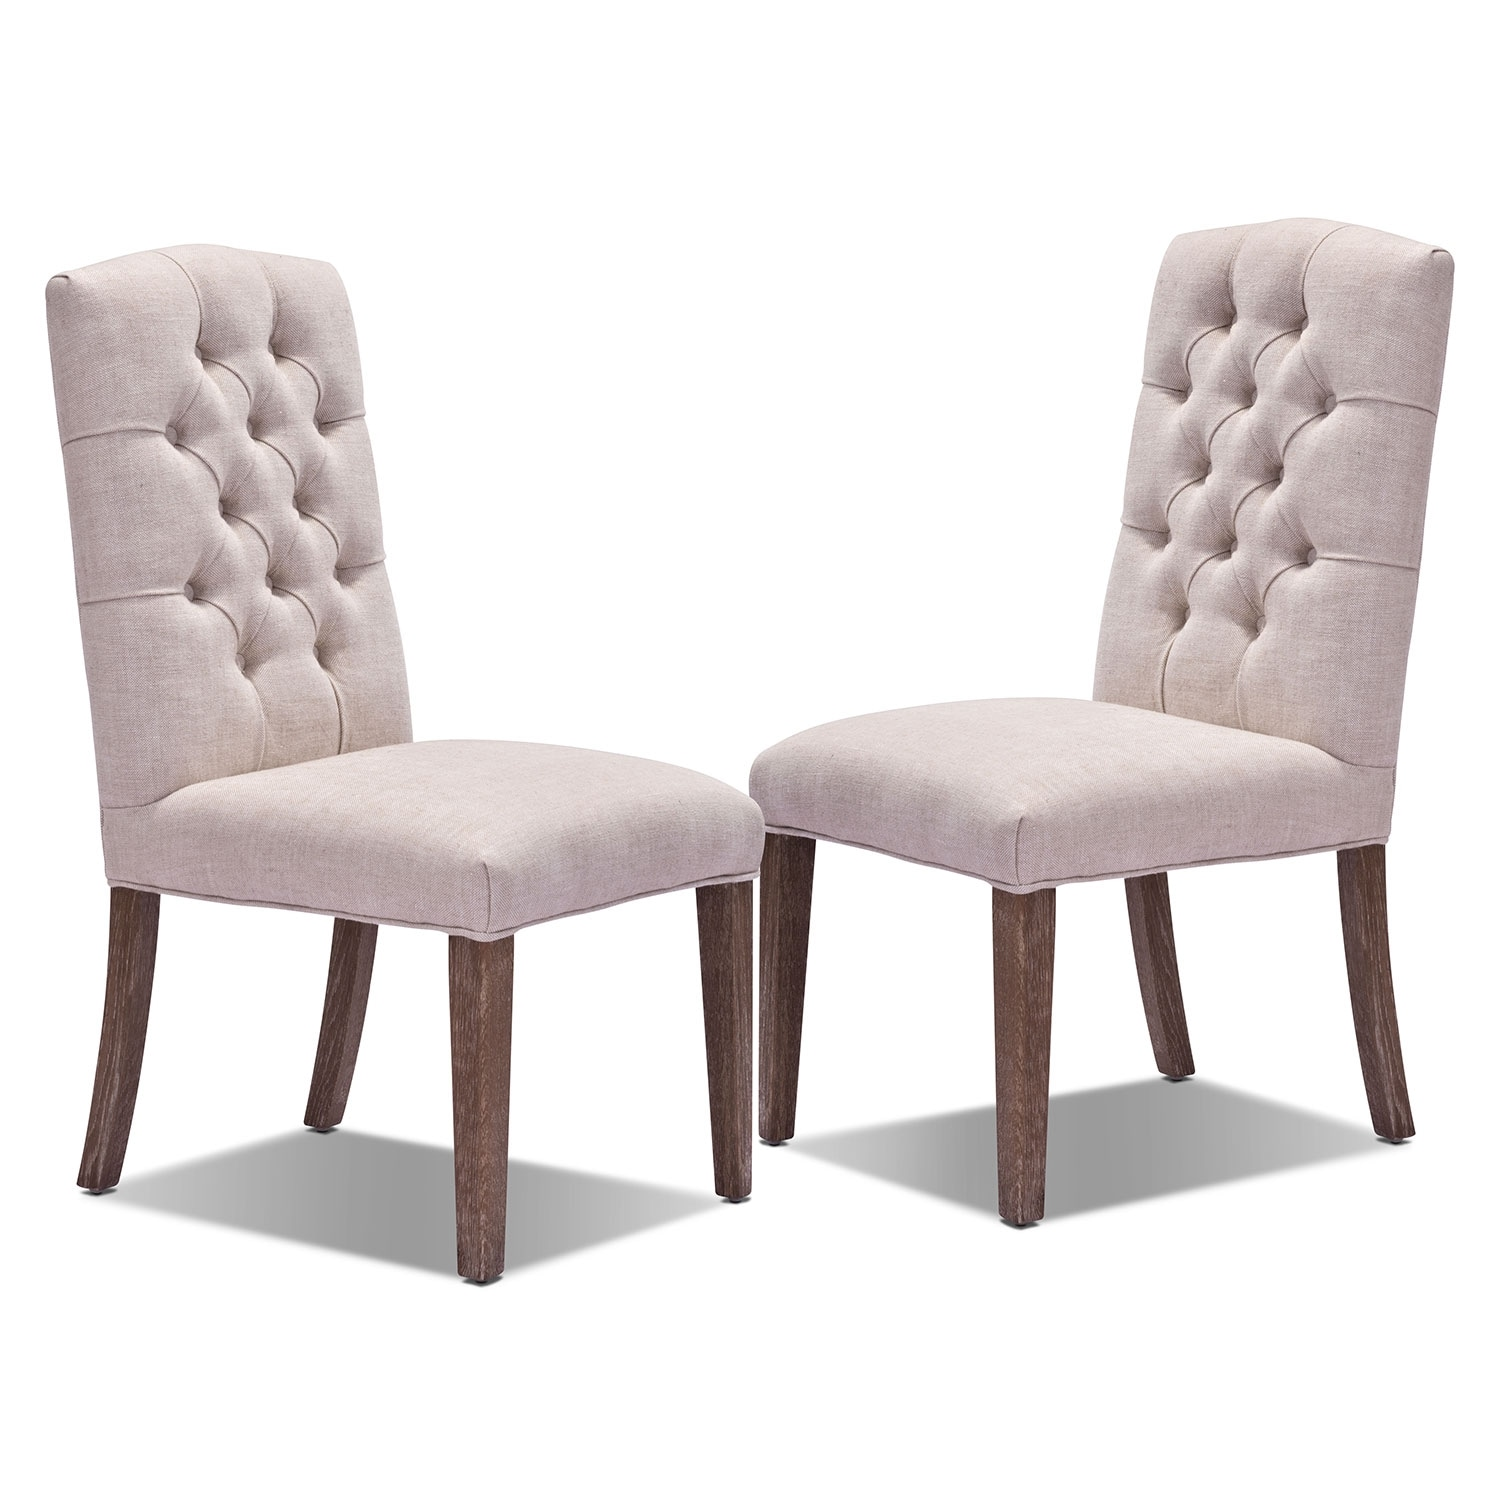 Dining room chairs seating american signature furniture for Seating room furniture